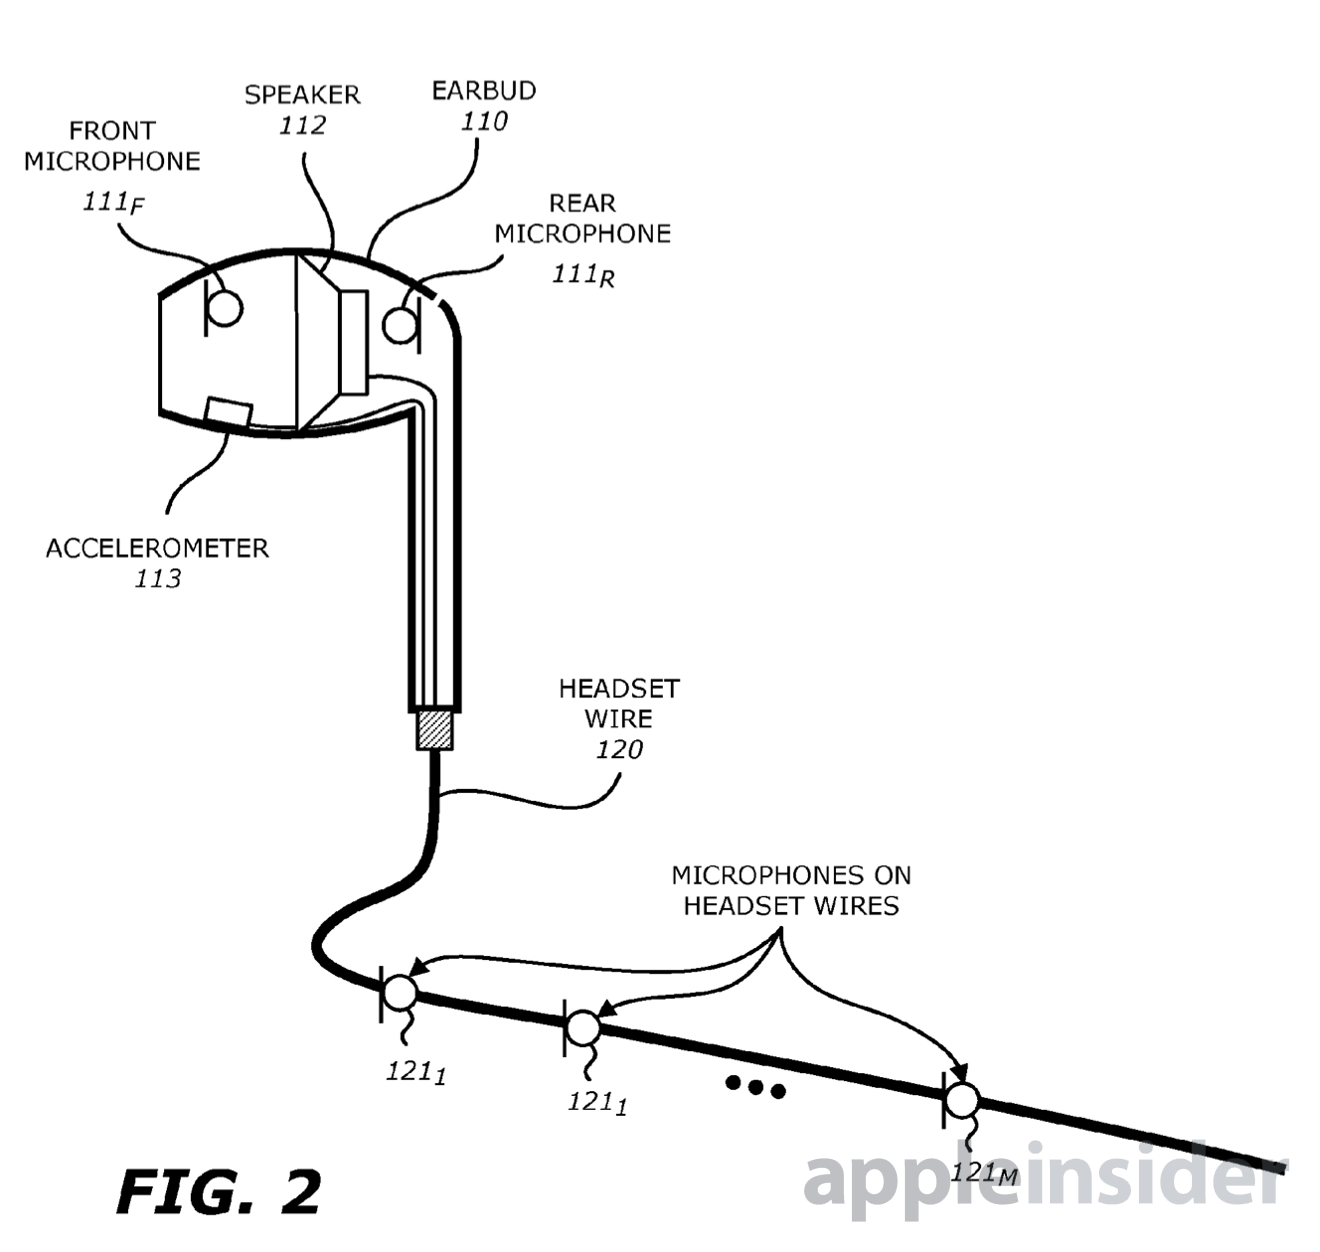 Apple Working On Voice Recognizing Headphones With Built In Accelerometer Beamforming Mics Appleinsider